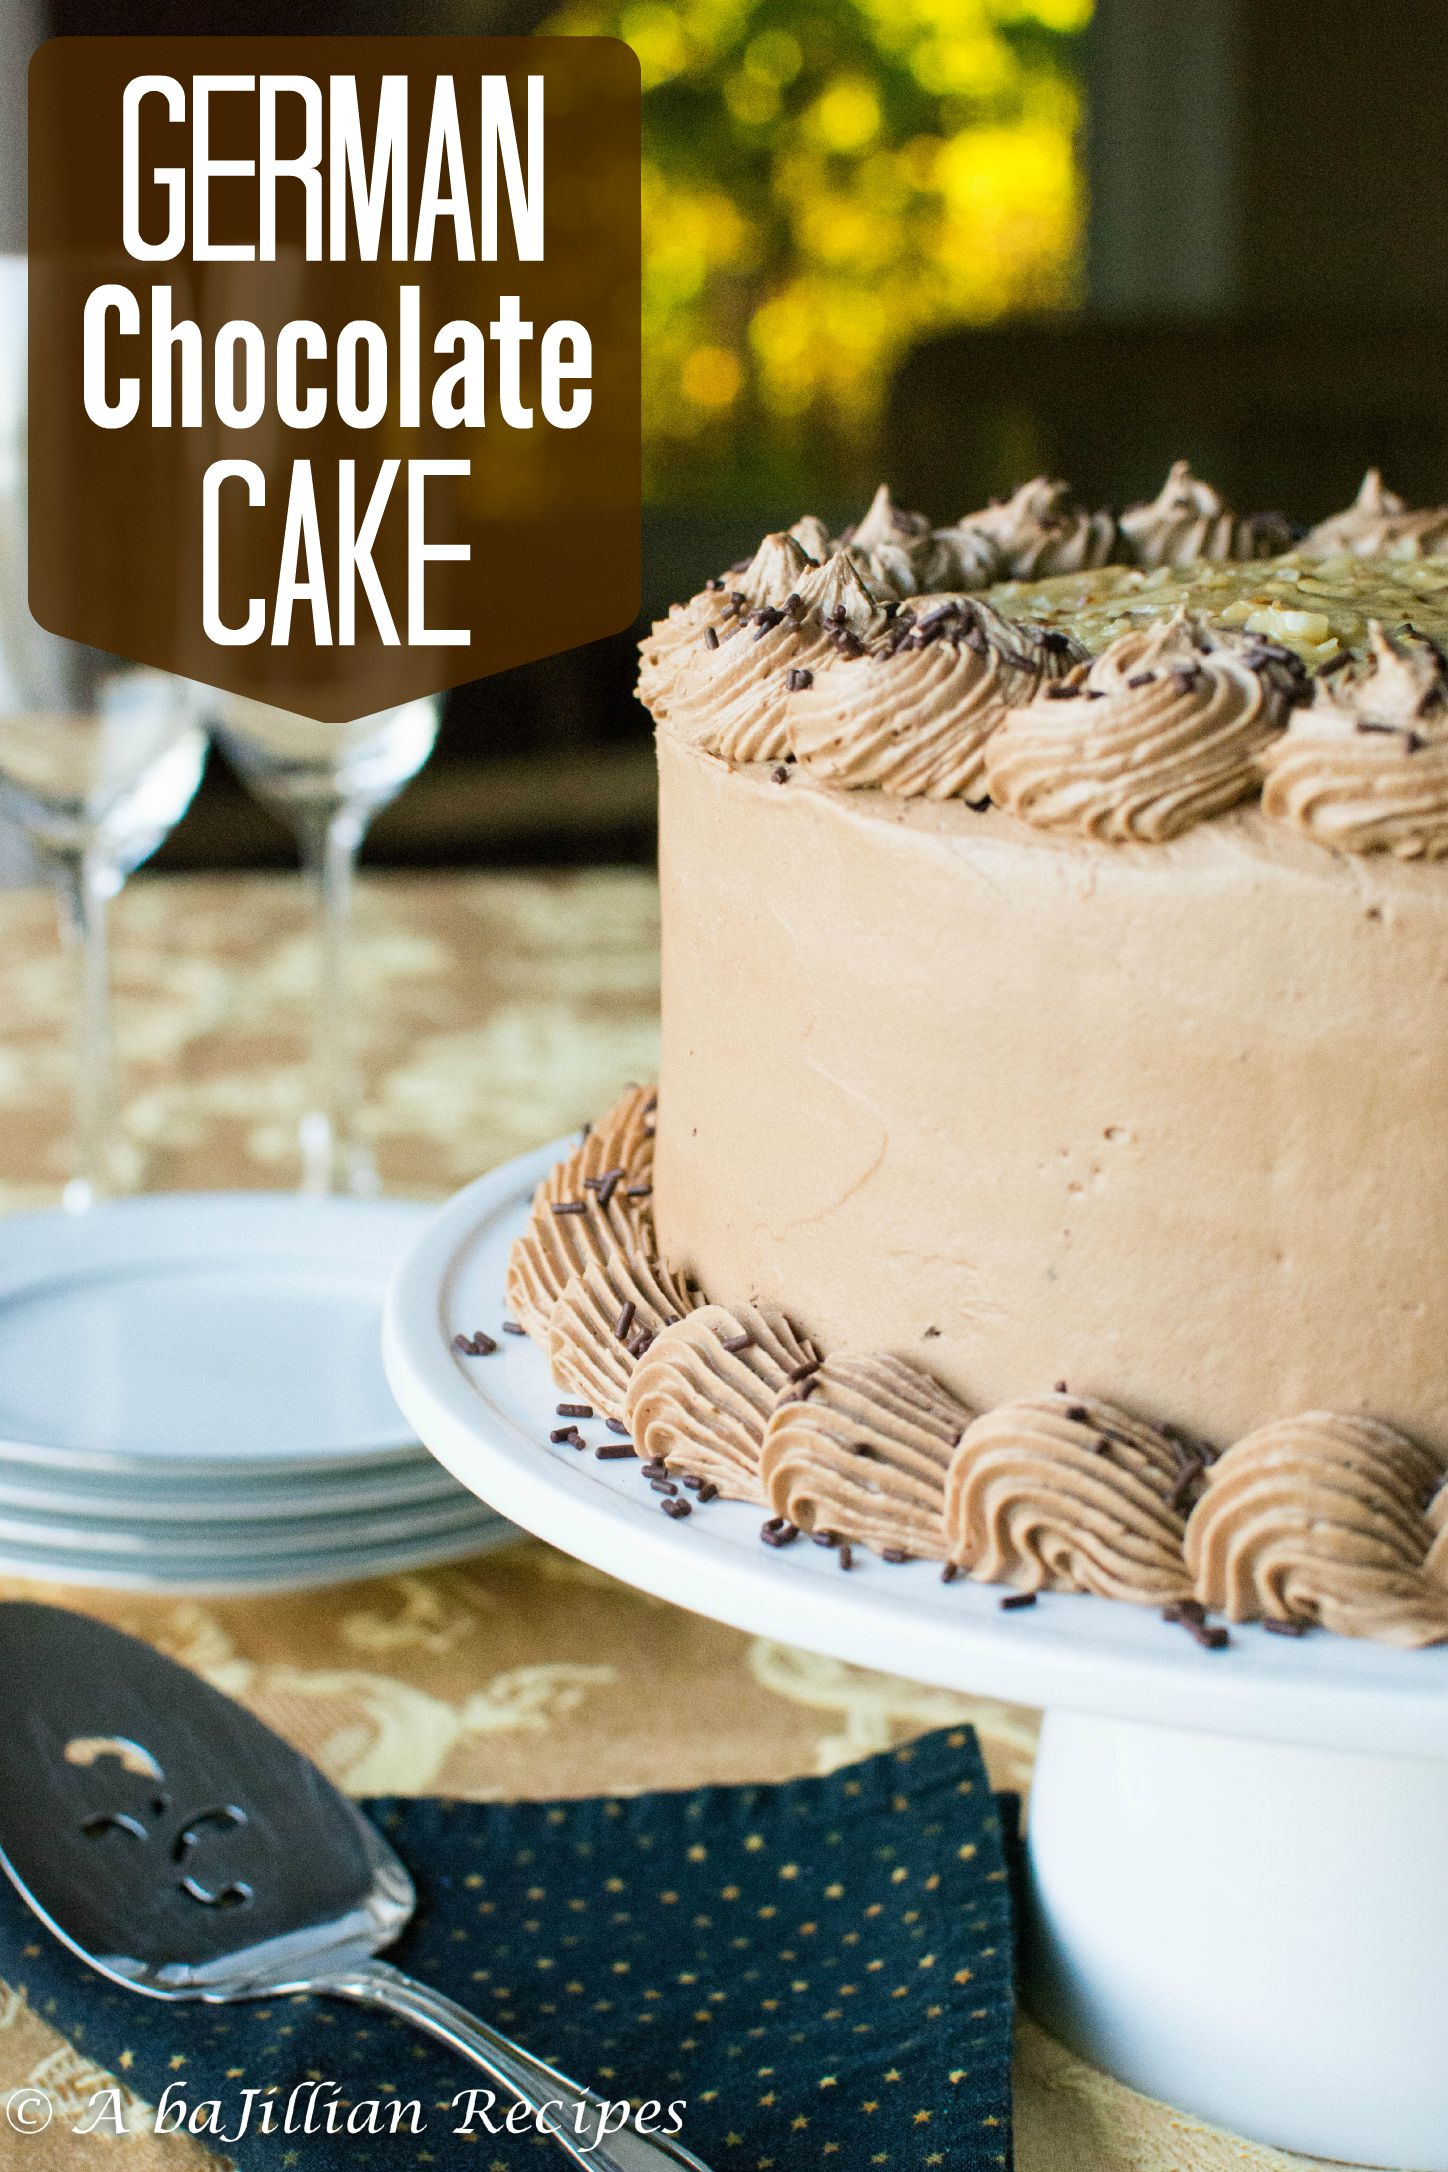 German Chocolate Cake - A baJillian Recipes